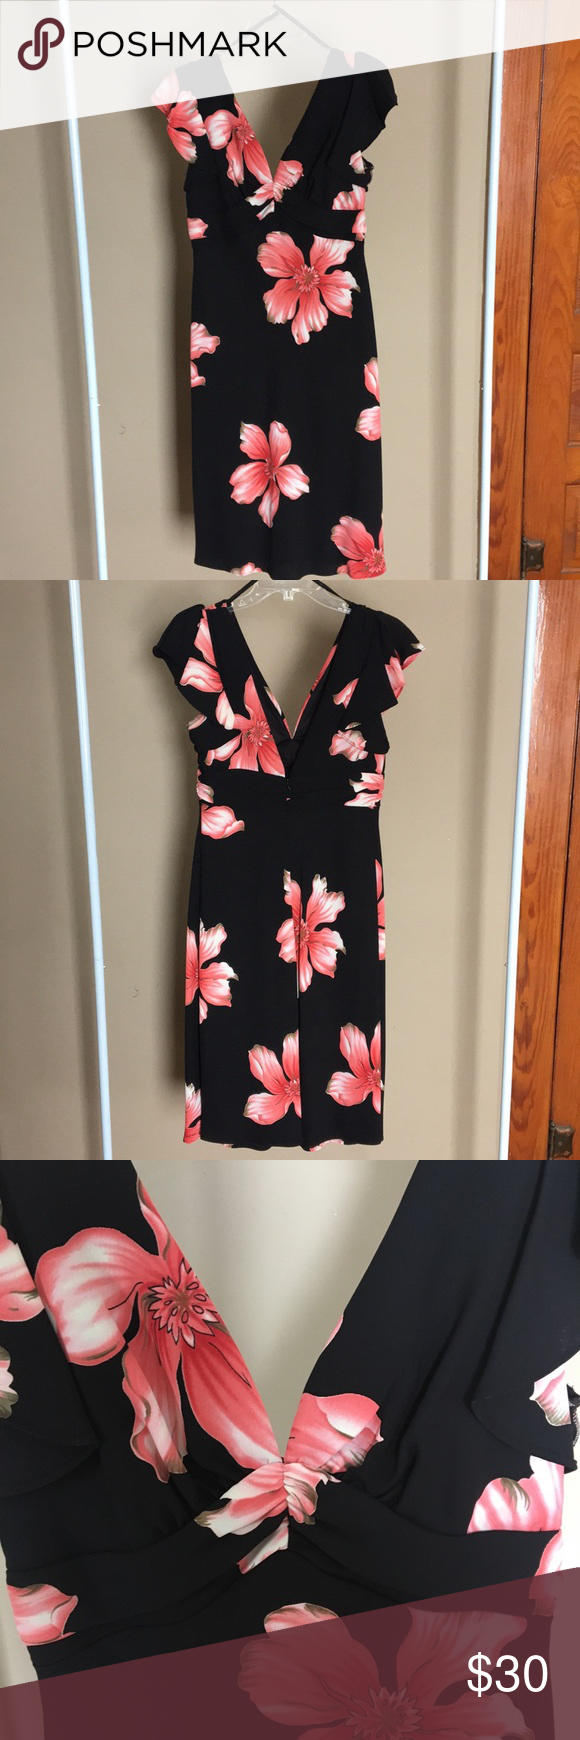 Euc S L Fashions Floral Dress Euc Beautiful Black Dress With Coral And White Flowers Backless With Split Cap S Beautiful Black Dresses Fashion Floral Dress [ 1740 x 580 Pixel ]